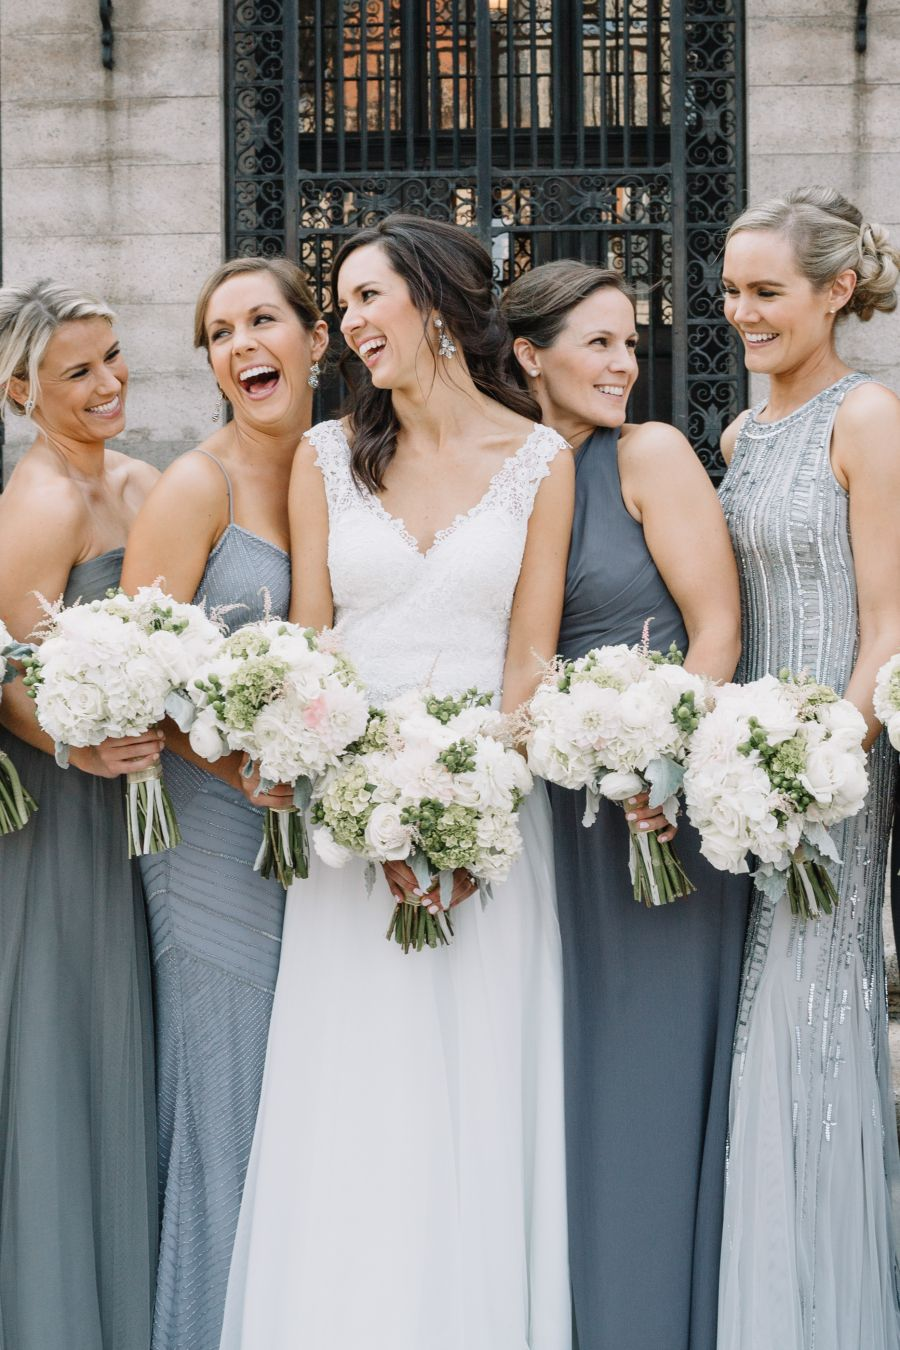 Mismatched Bridesmaids In Grey For A City Wedding Mismatched Bridesmaids Wedding Bridesmaid Dresses Bridesmaid Dresses